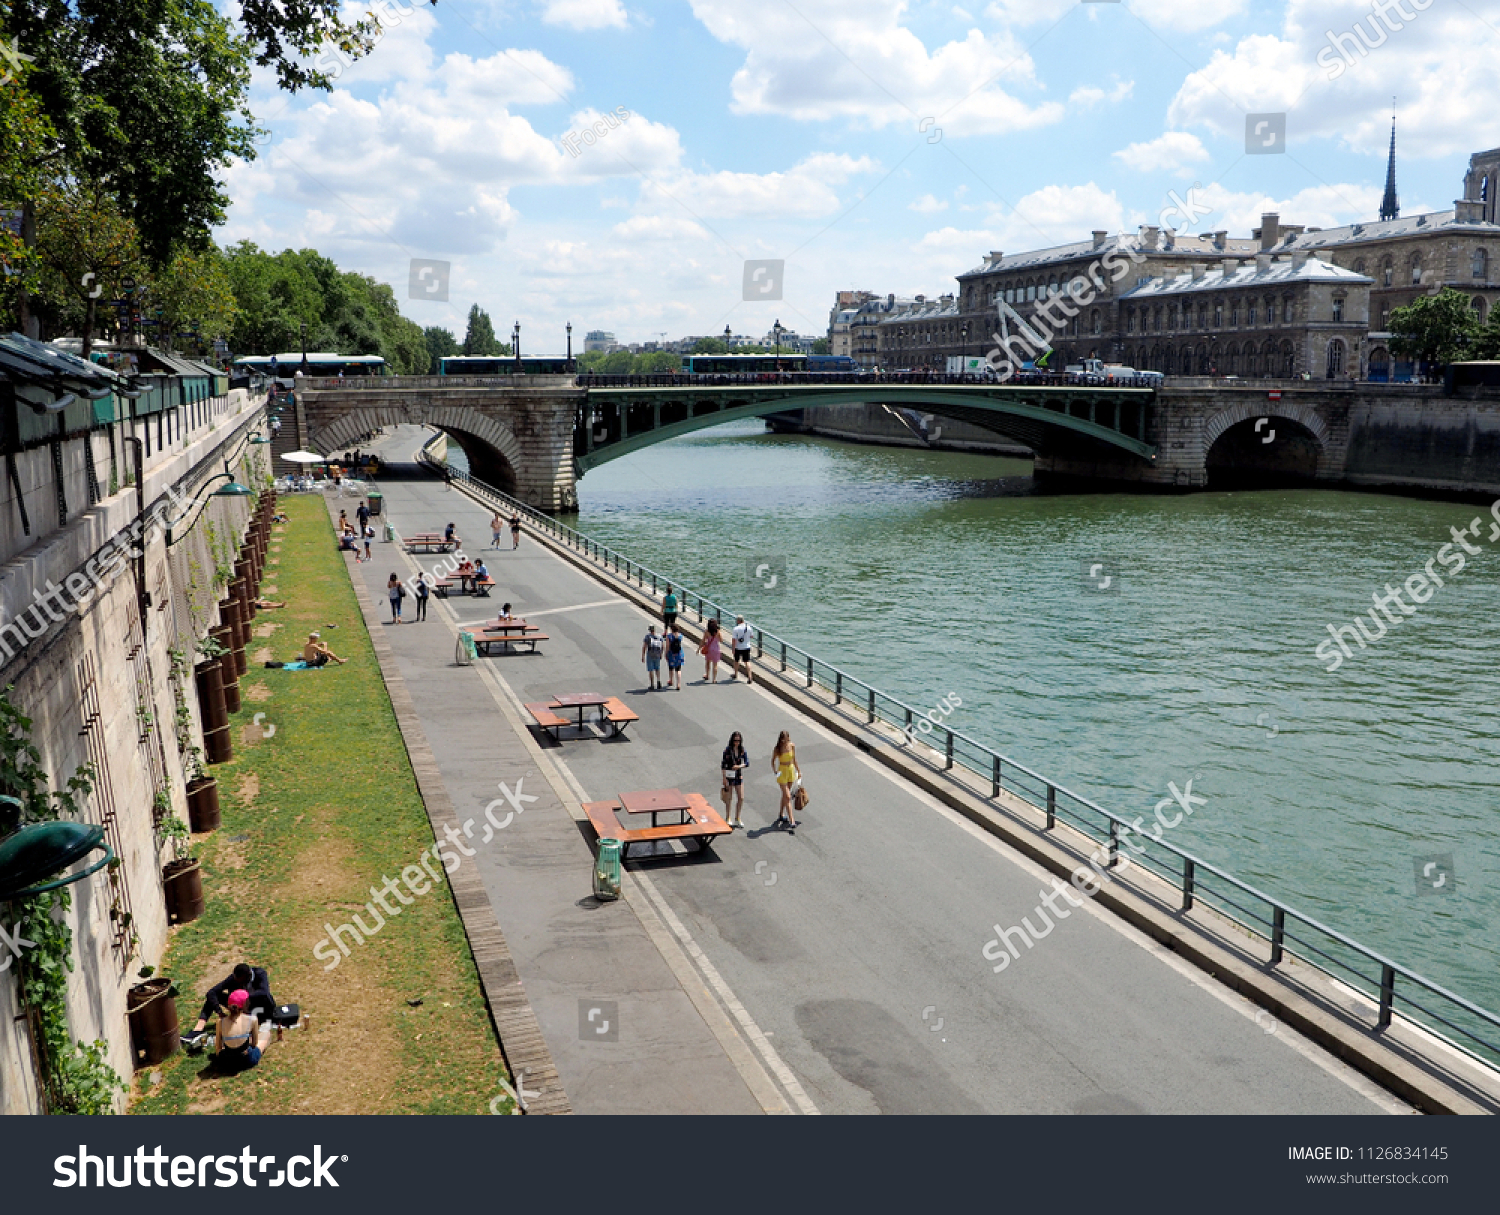 PARIS, FRANCE - JULY 3, 2018: People enjoy taking a stroll along river Seine on July 3, 2018 in Paris, France.